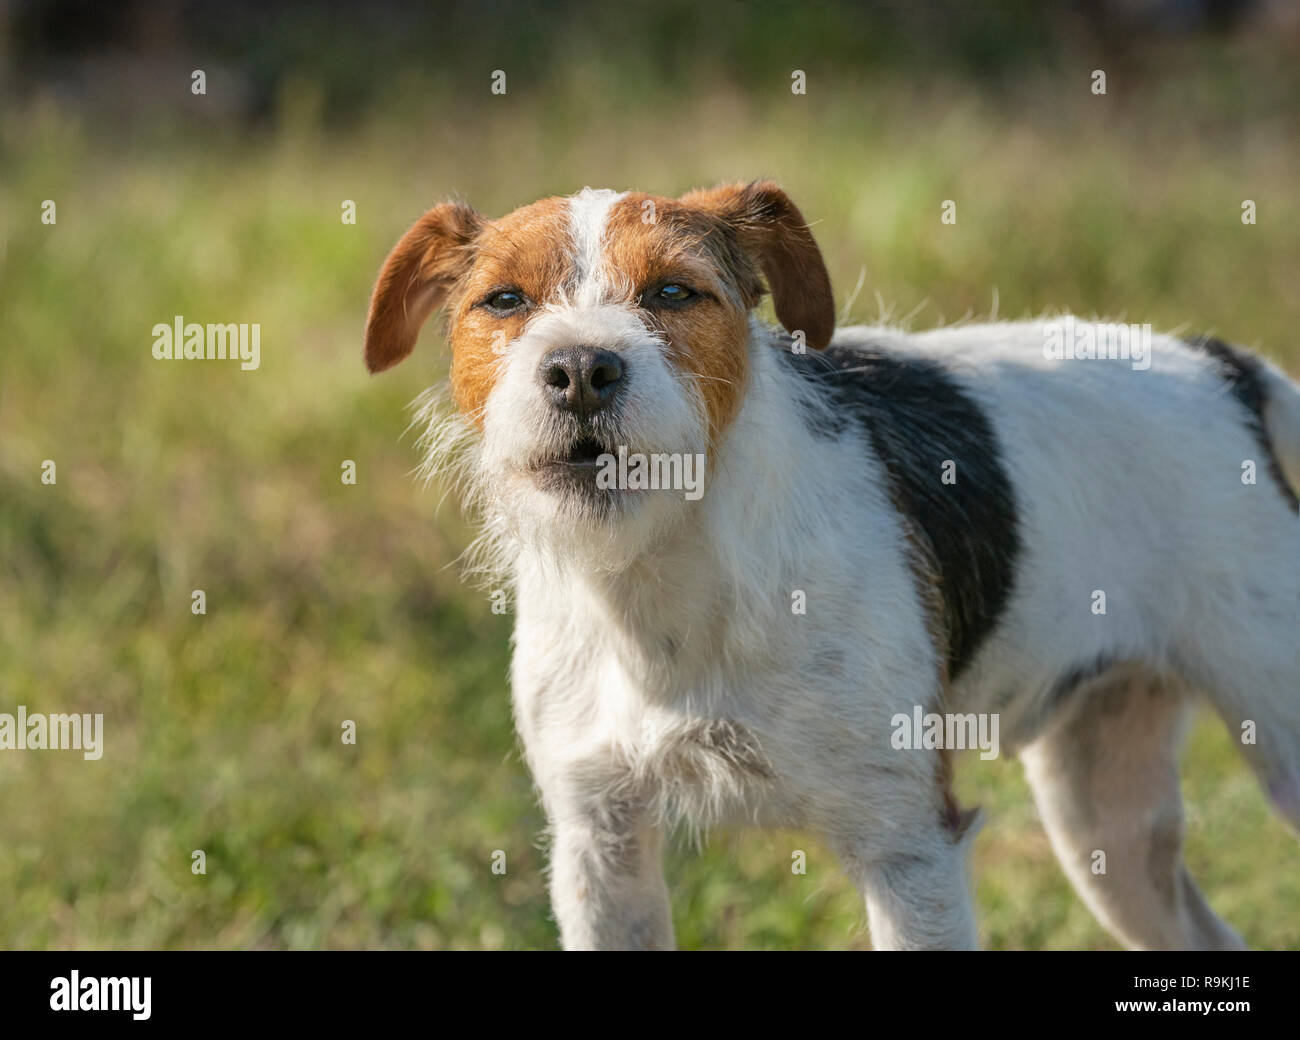 Portrait of Jack Russel Terrier dog with attitude - Stock Image